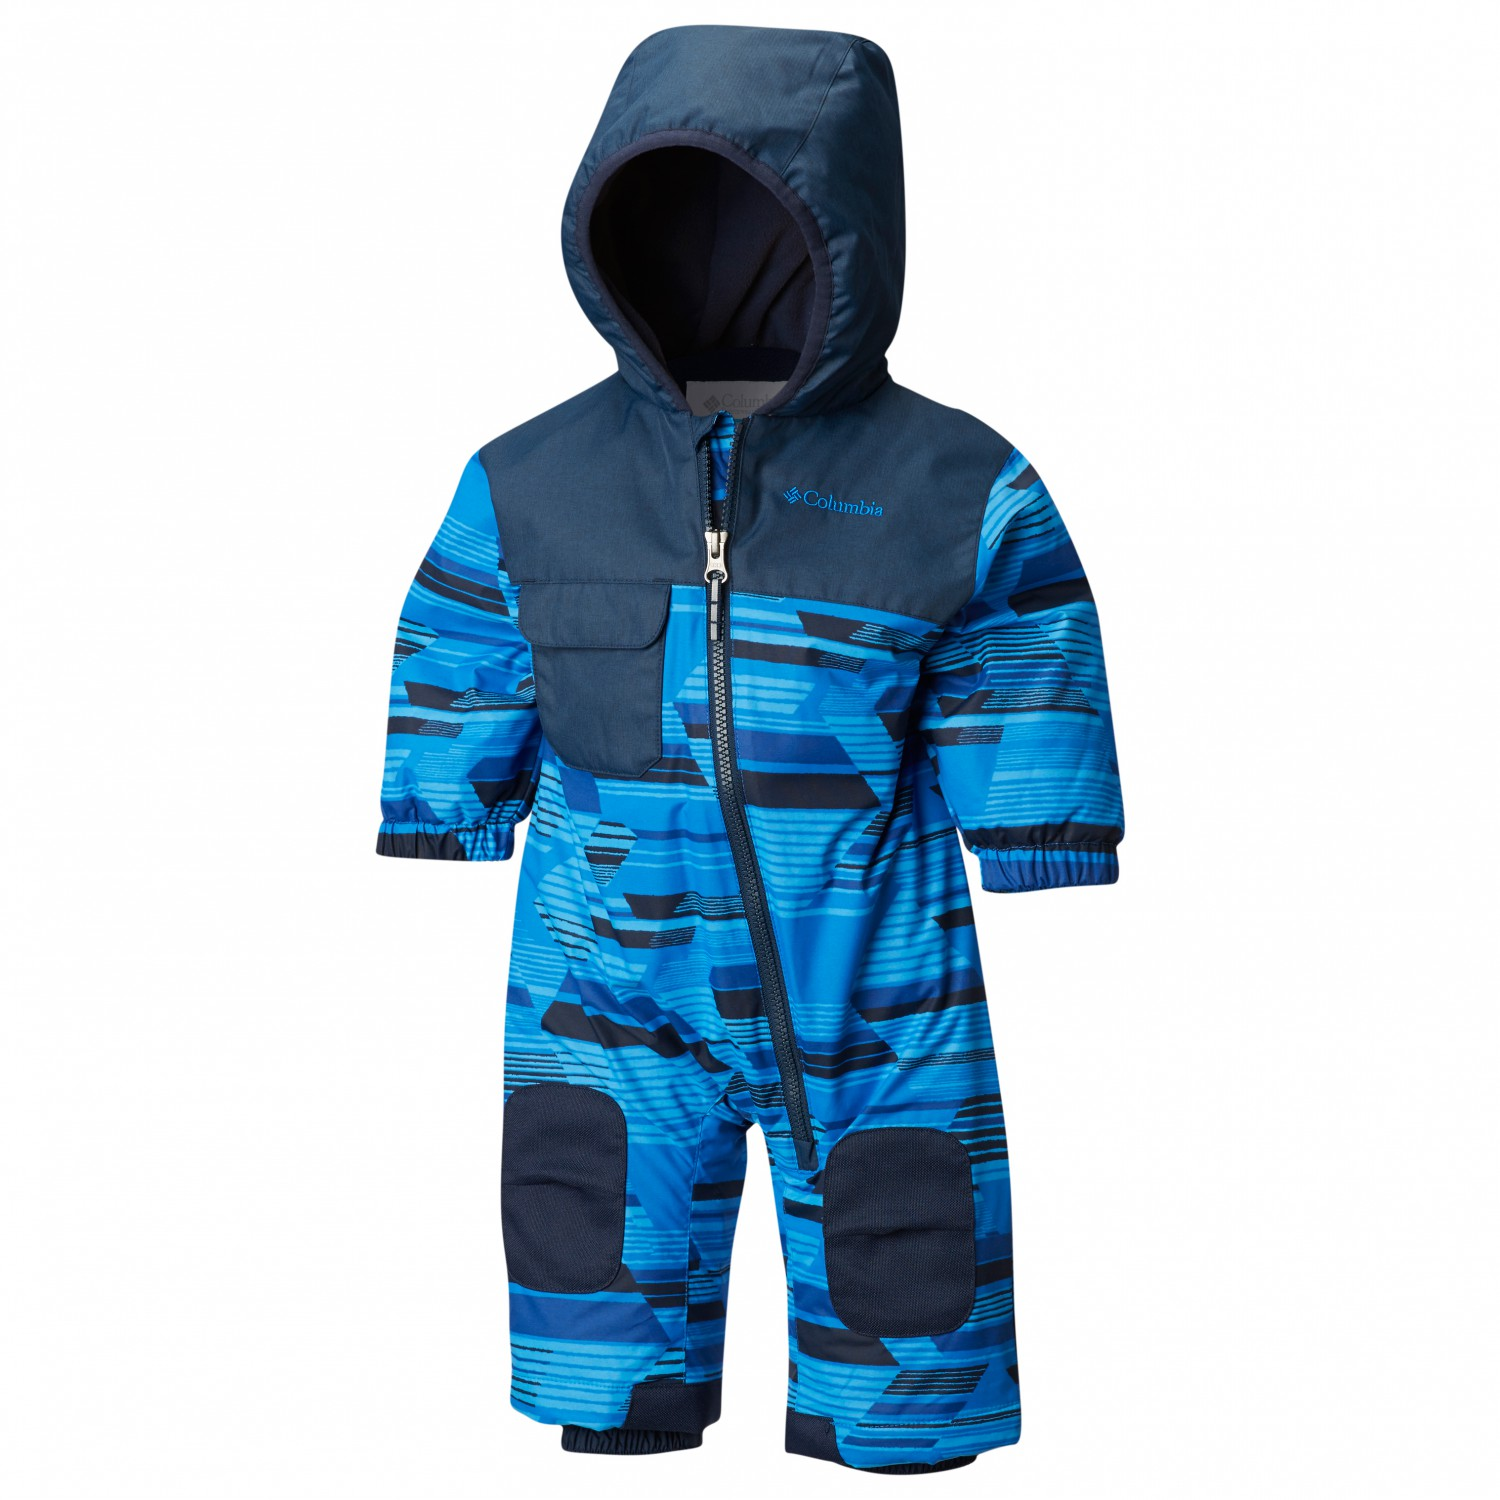 6de63b727 Columbia Hot-Tot Suit - Overall Kids | Buy online | Alpinetrek.co.uk